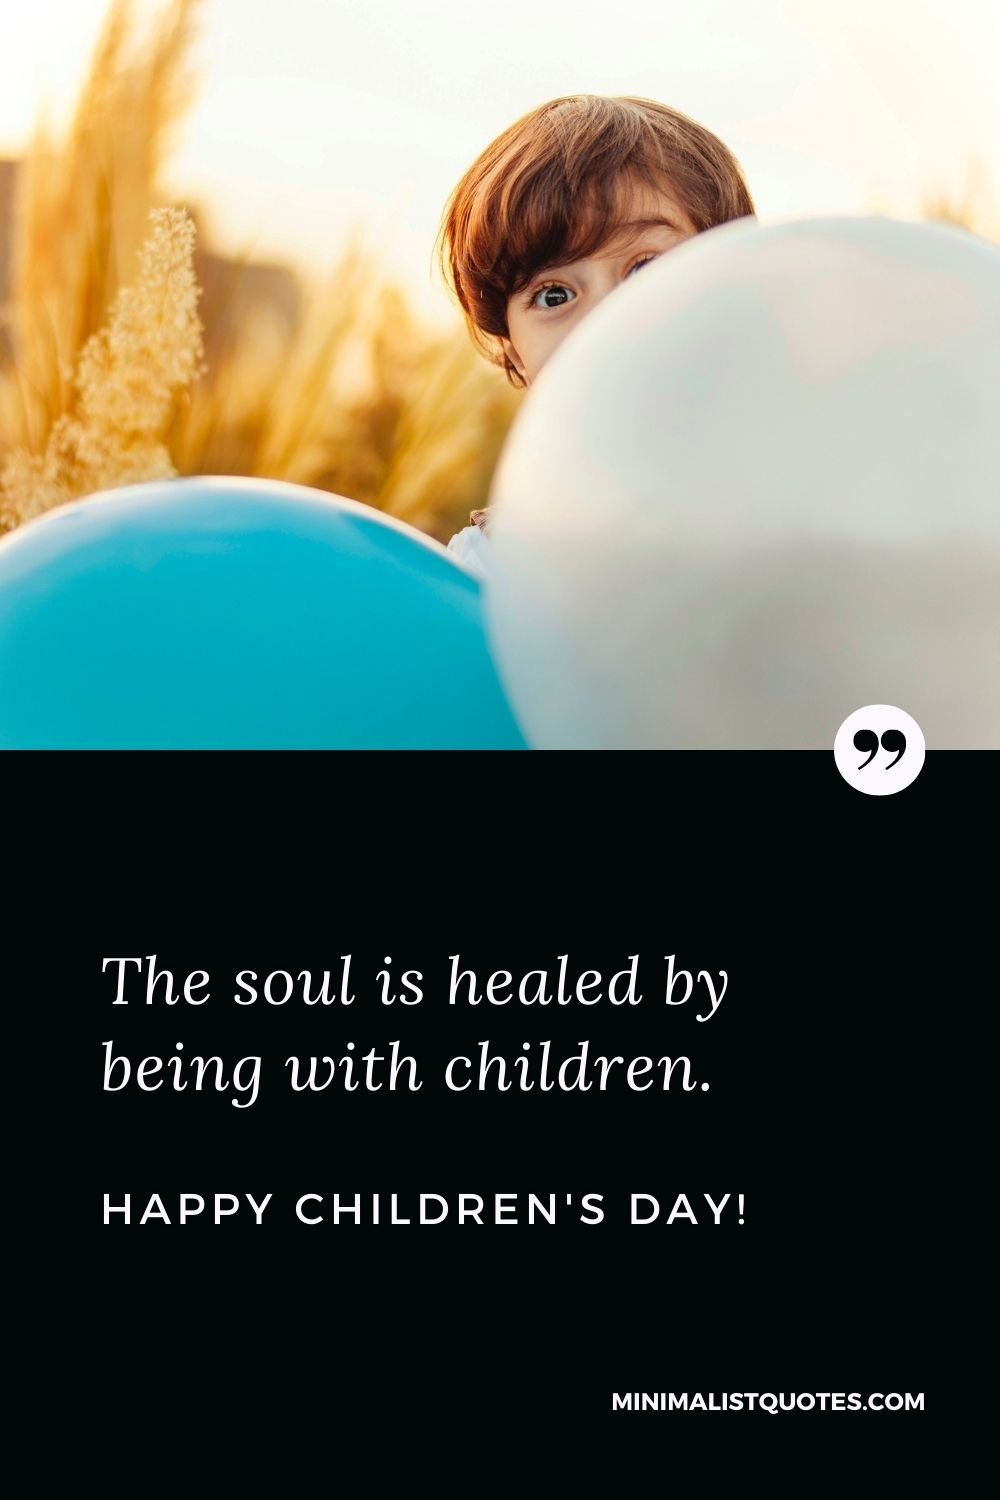 Children's Day Quote, Wish & Message With Image: The soul is healed by being with children. Happy Childrens Day!